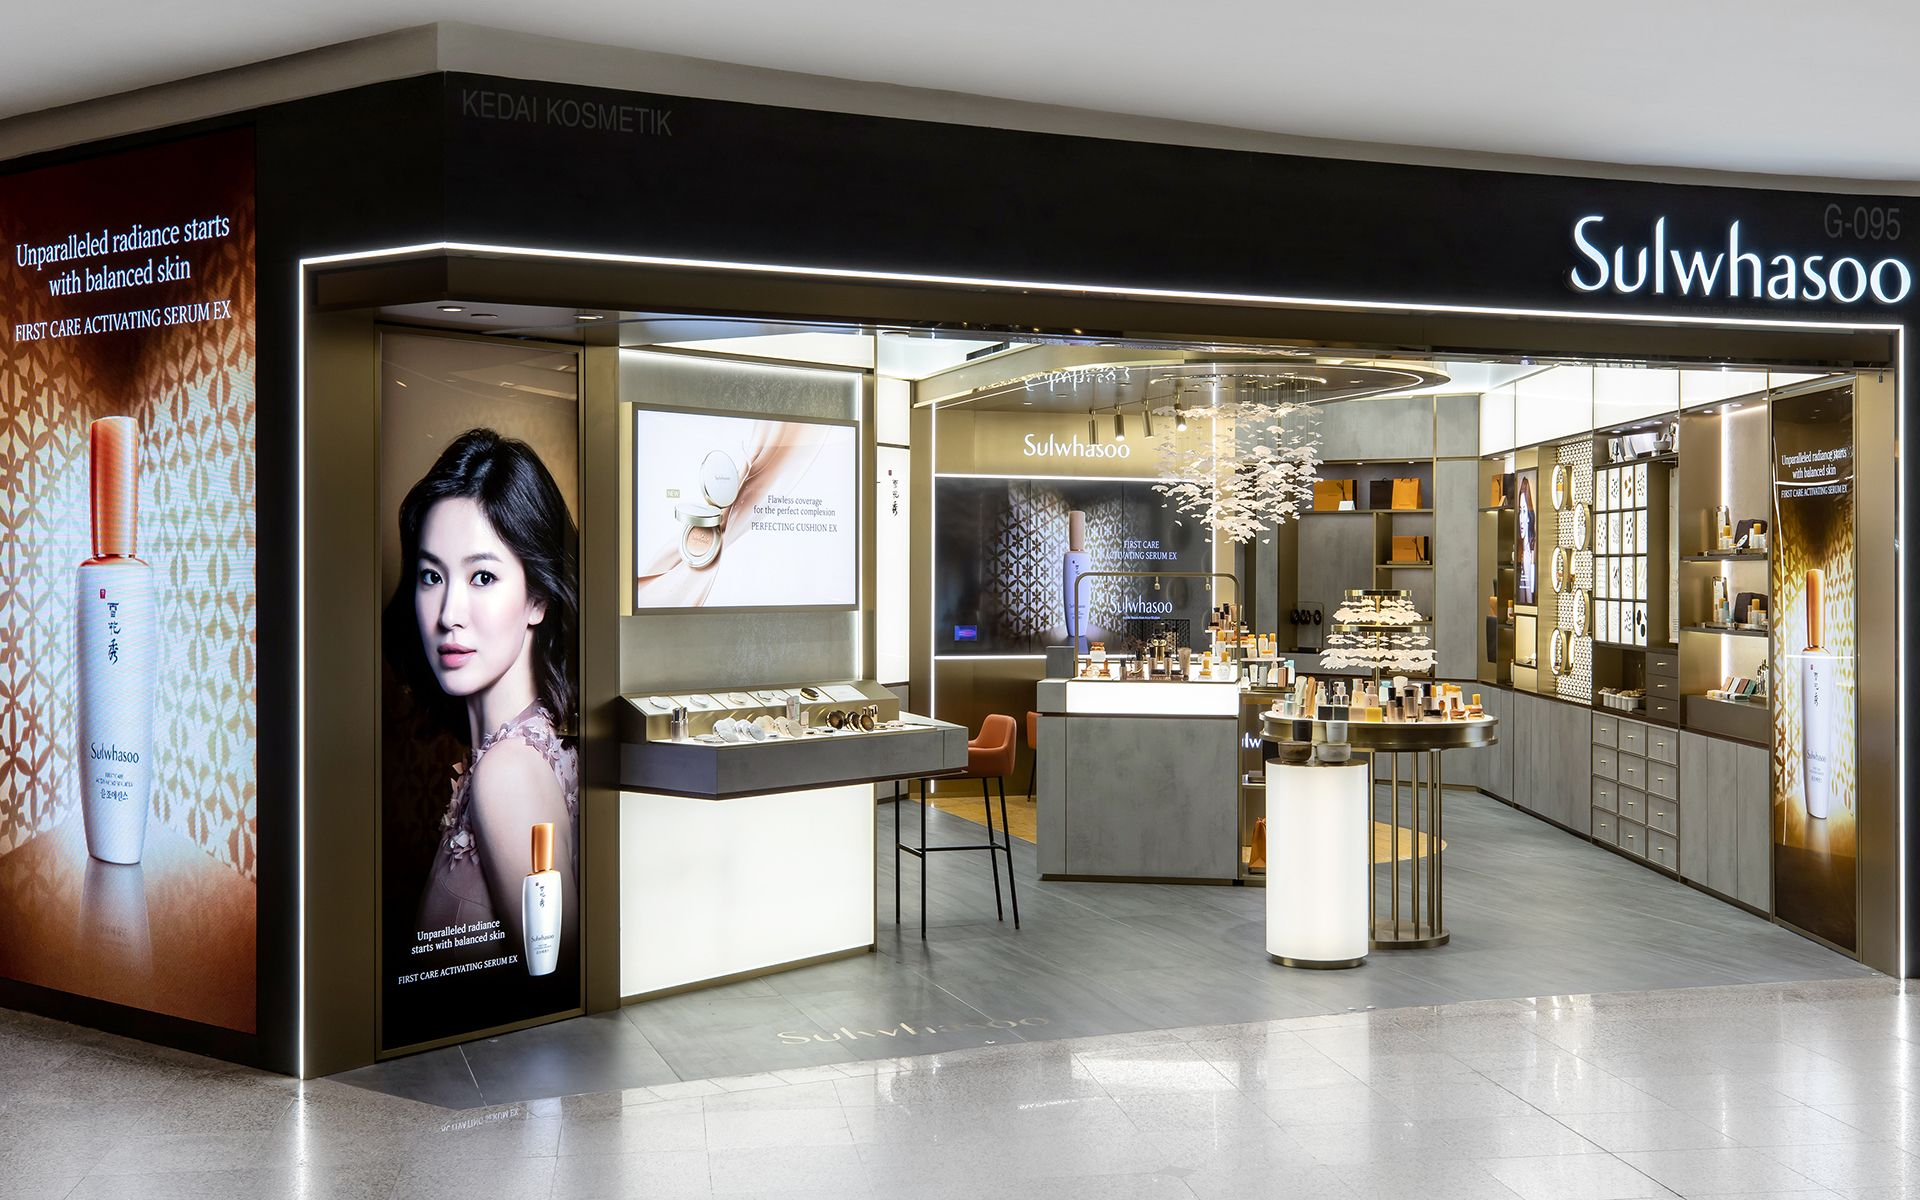 8 New Stores To Hit Up In Klang Valley, From Robinsons, Sulwhasoo, Chanel Ephemeral & More